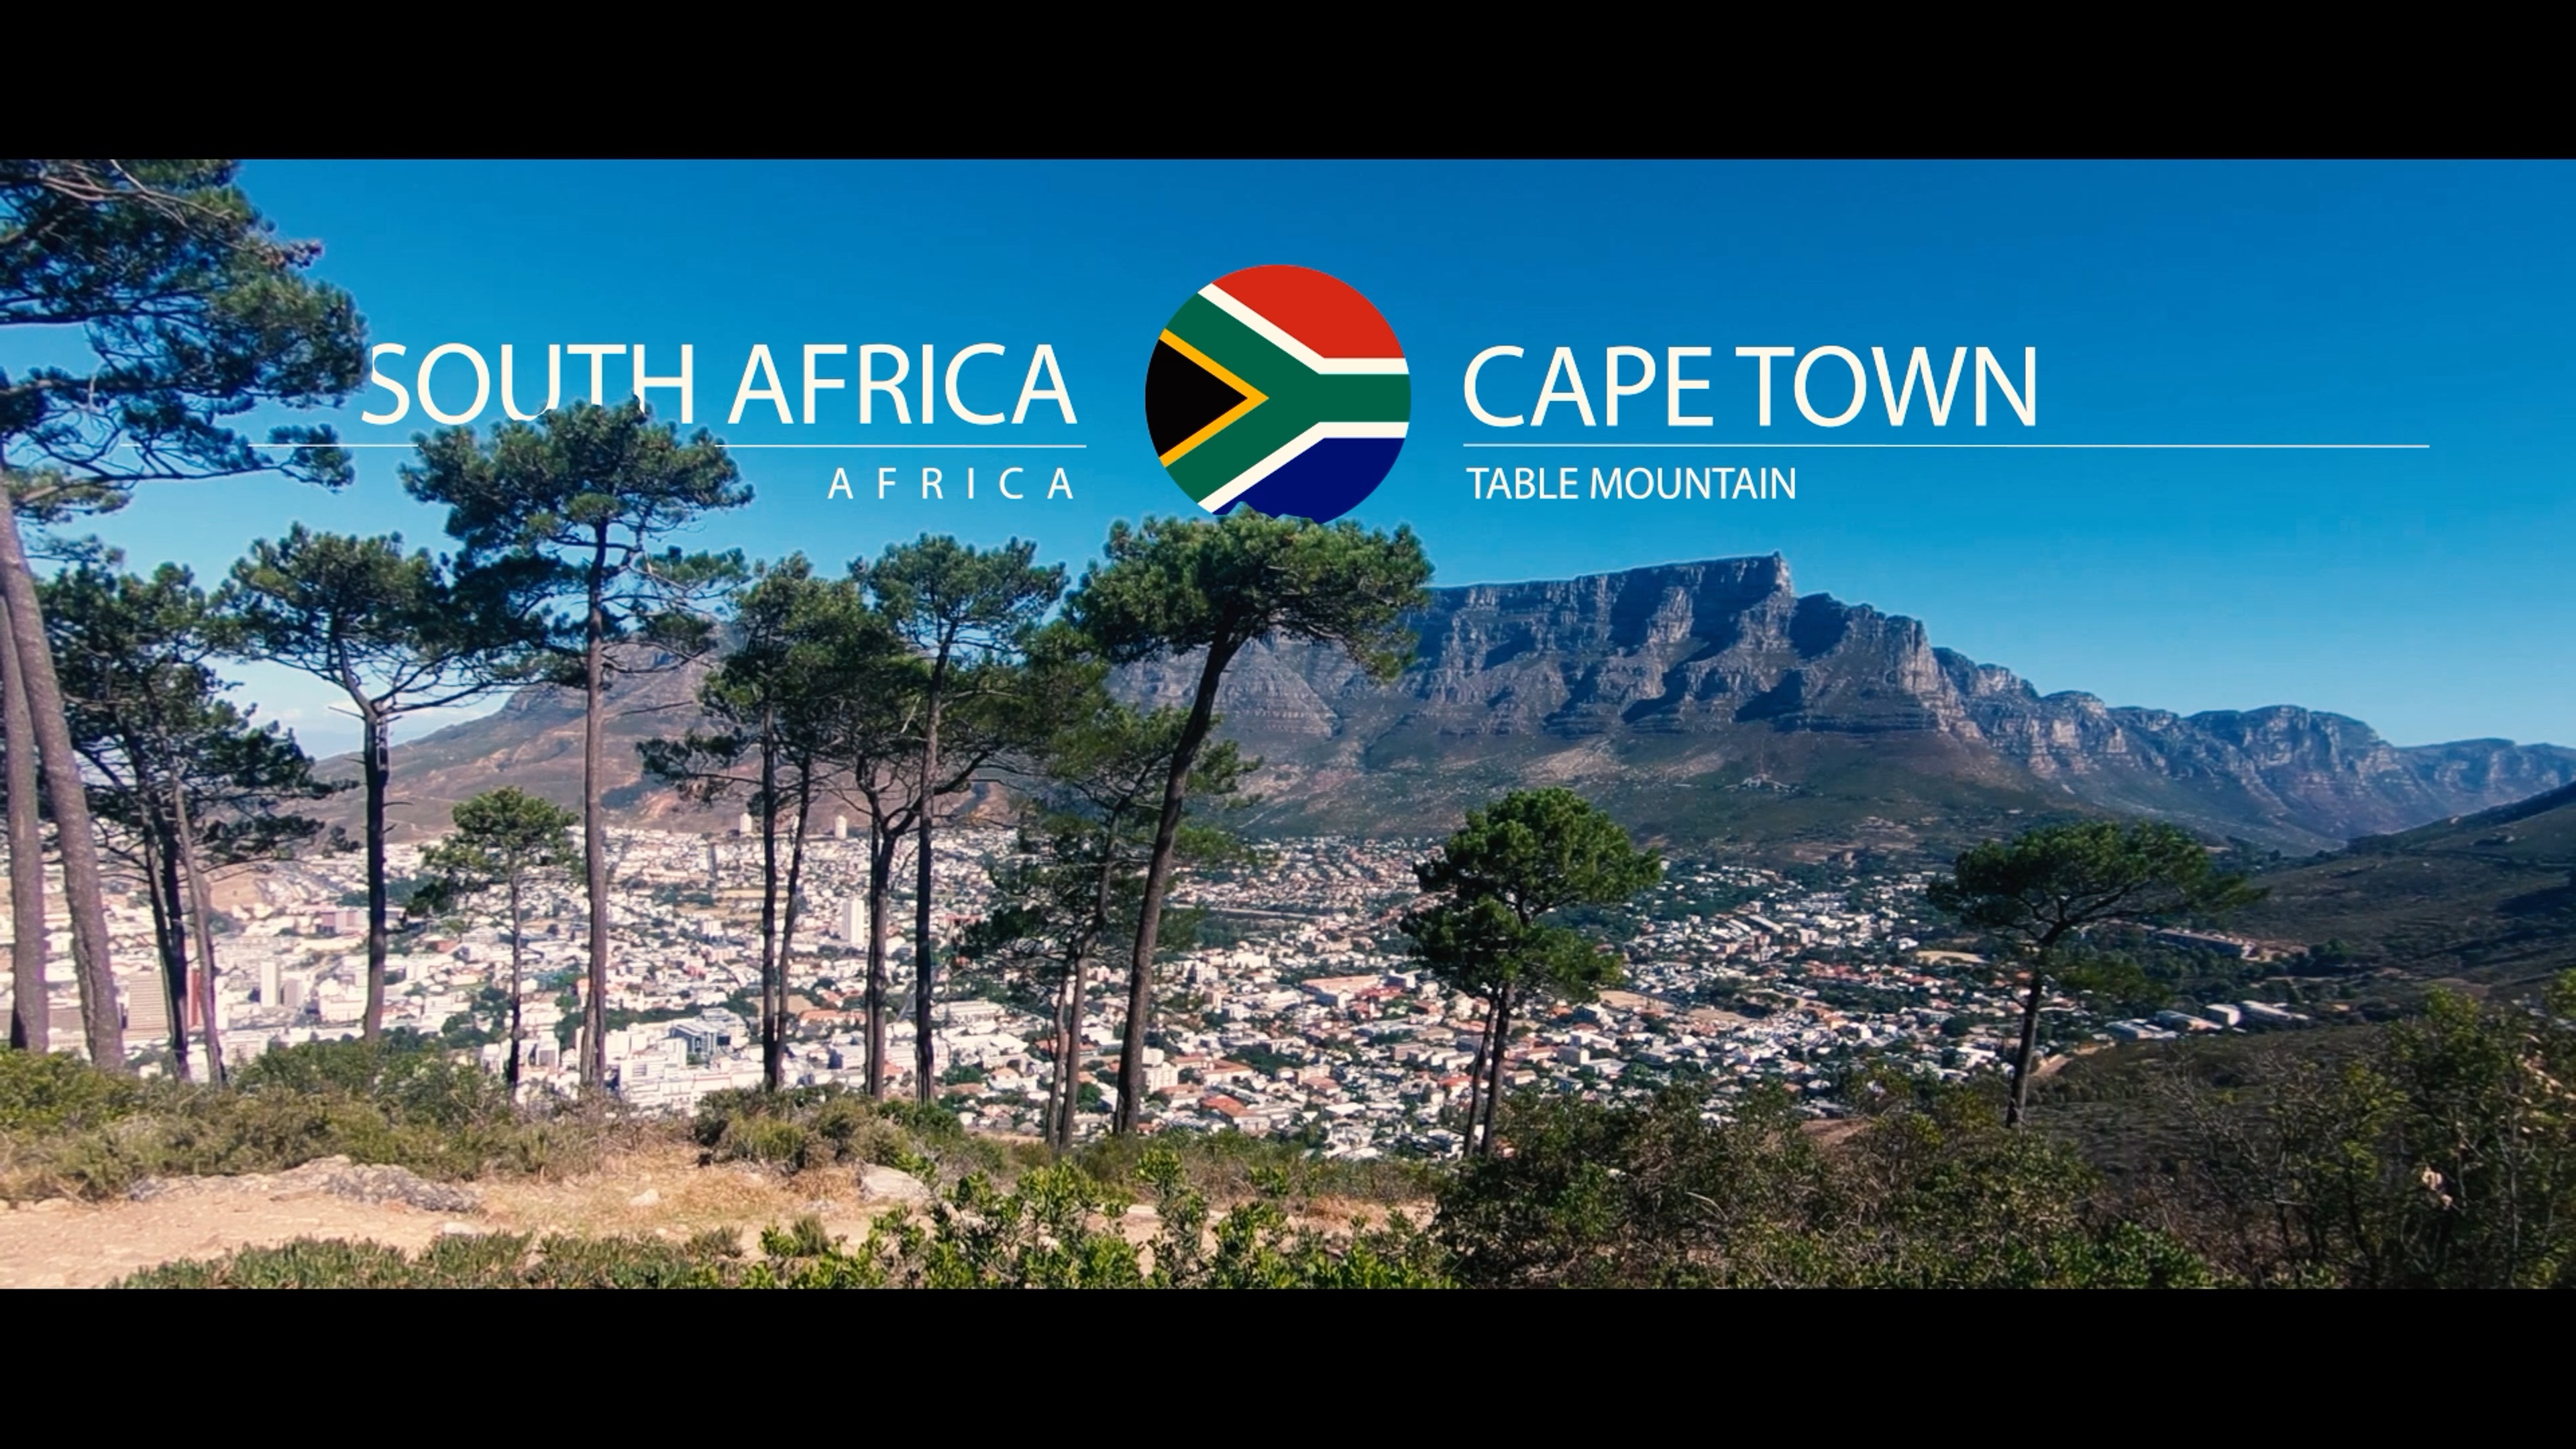 Cape Town (South Africa)